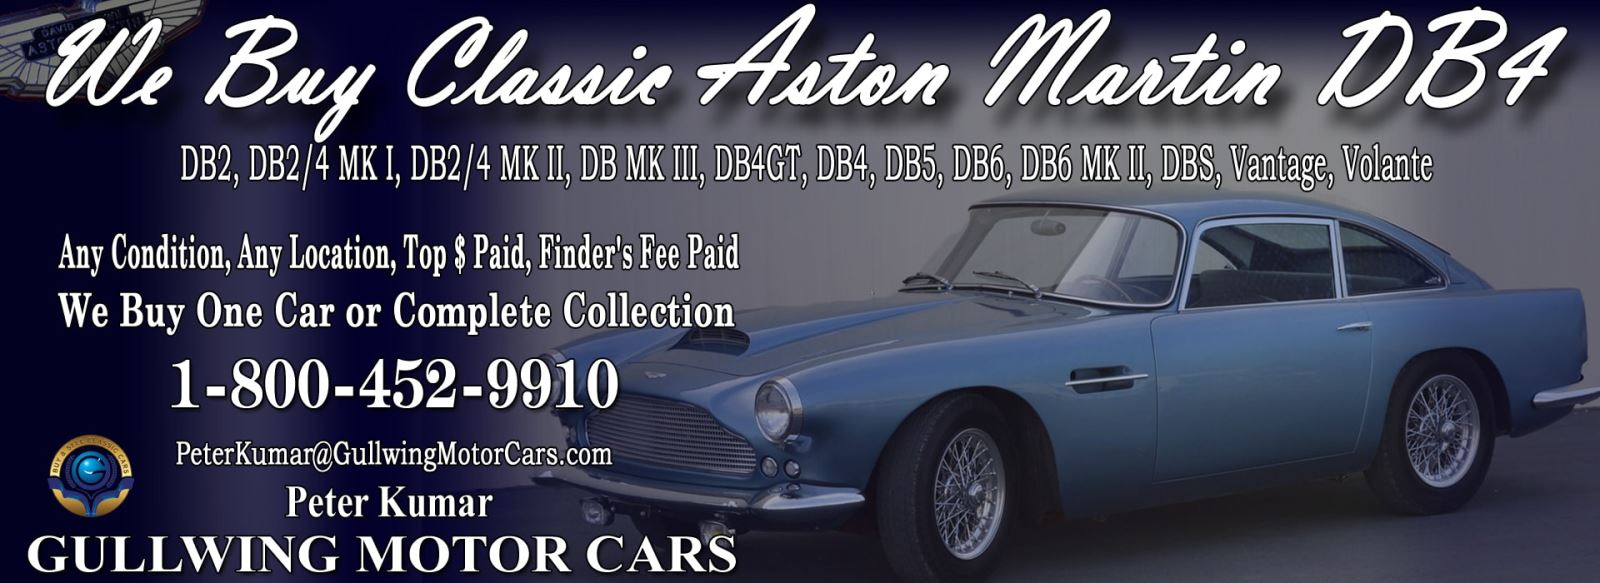 Classic Aston Martin DB4 for sale, we buy vintage Aston Martin DB4. Call Peter Kumar. Gullwing Motor